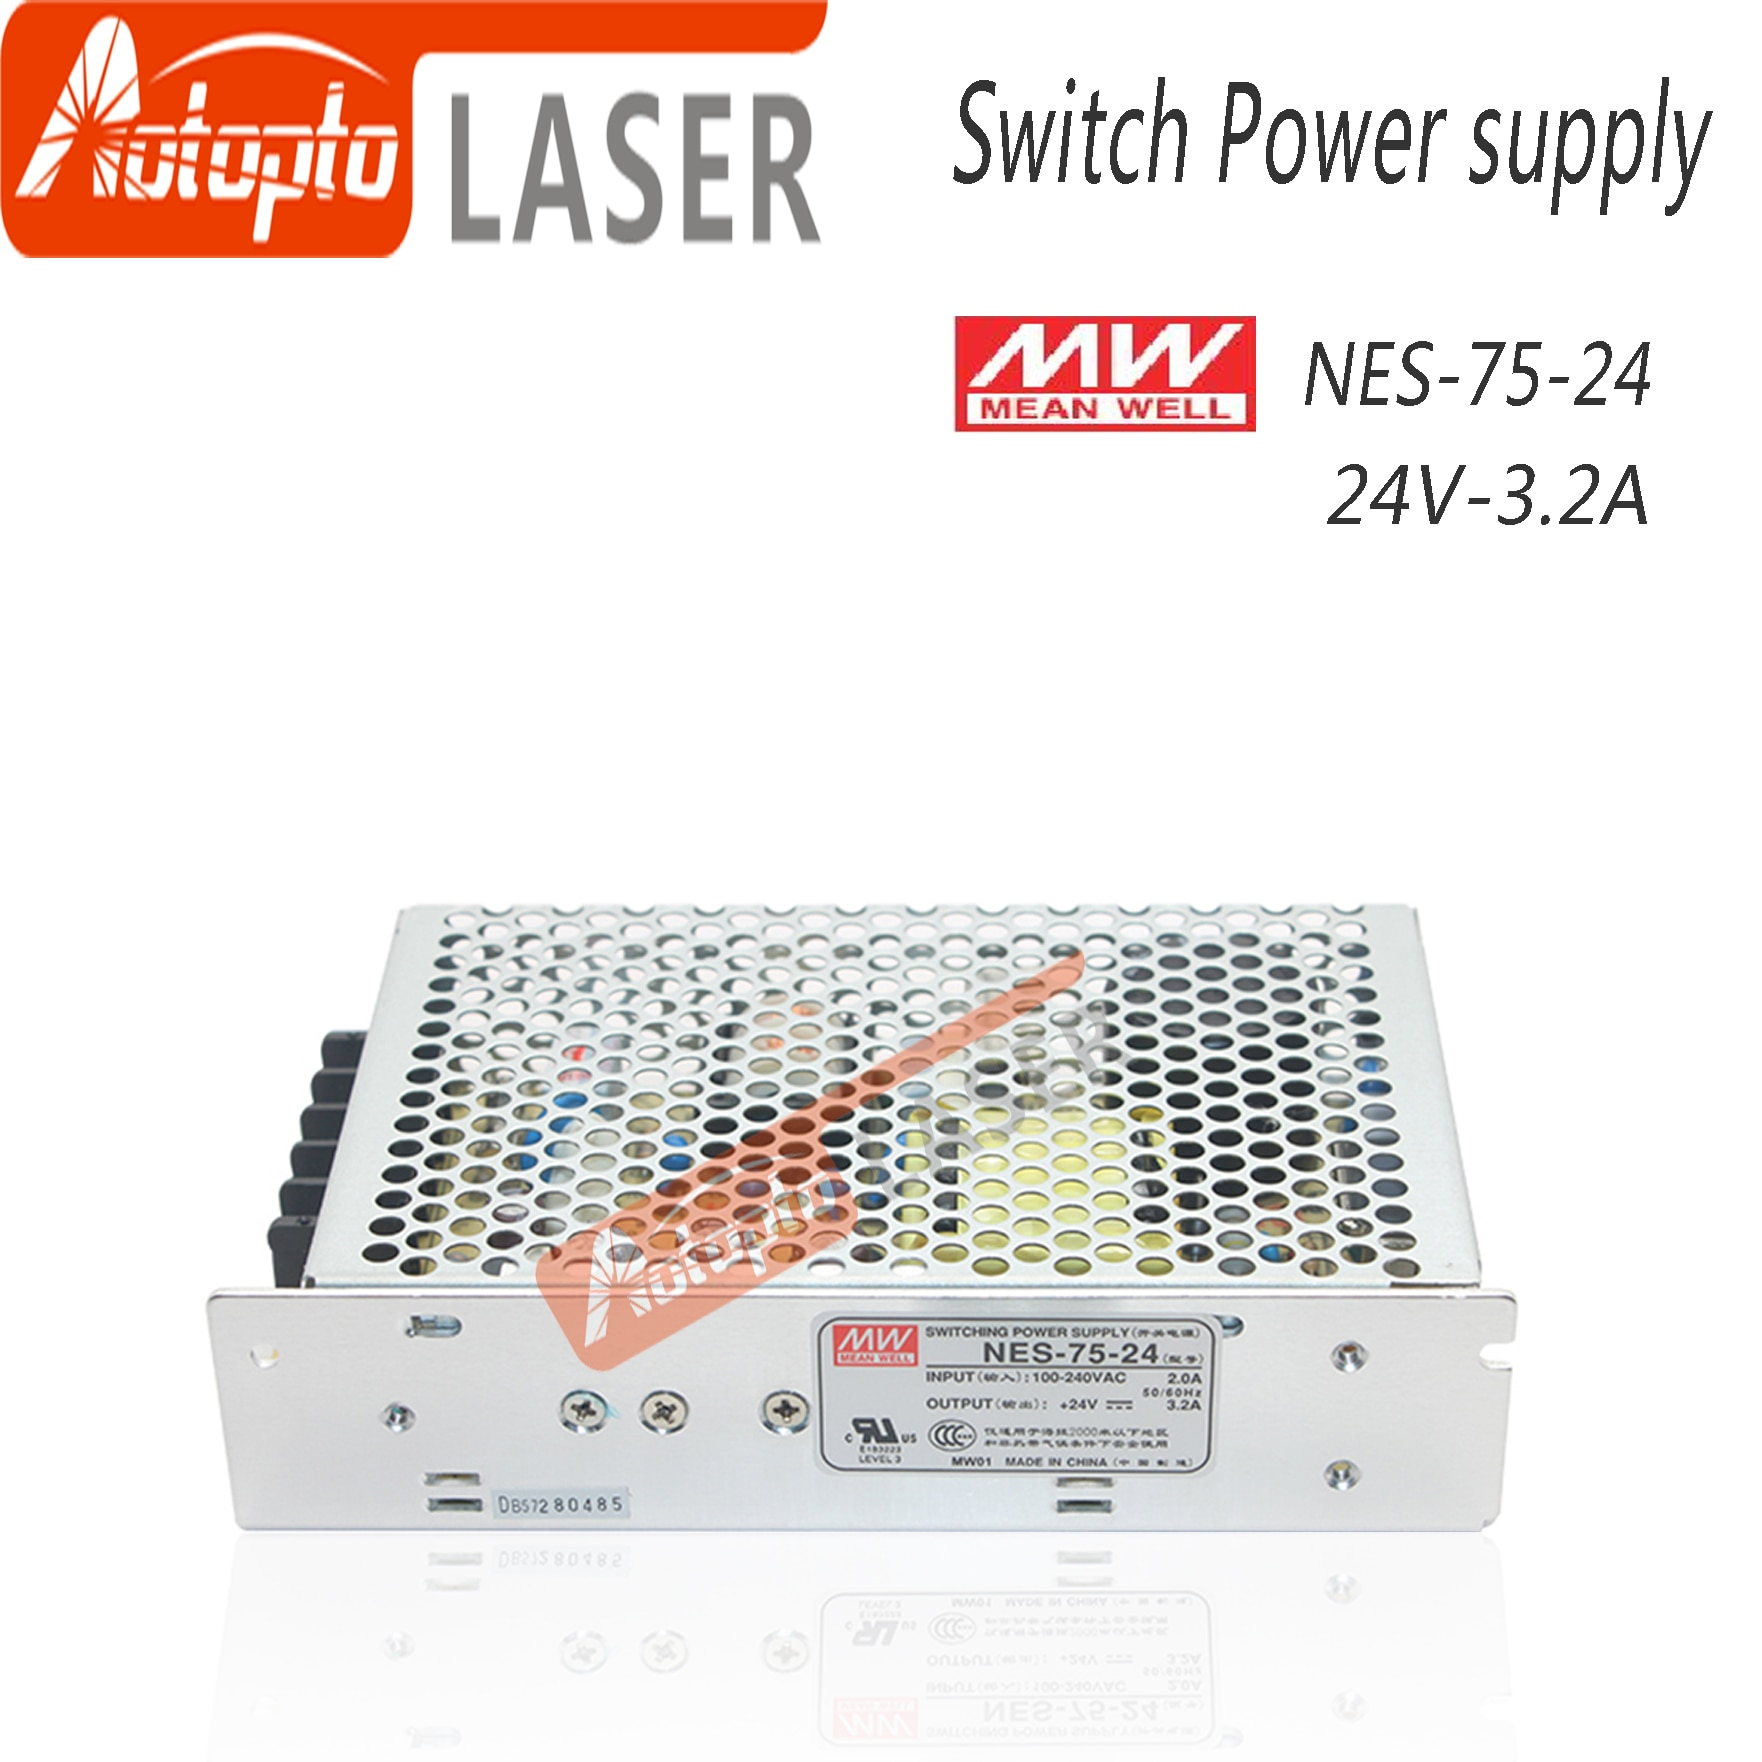 advantages mean well cen 75 15 15v 5a meanwell cen 75 15v 75w single output led power supply Taiwan Meanwell Switching Power Supply NES-75-24 5V 12V 15V 24V  48V  for Laser Controller Single output DC Power Supply